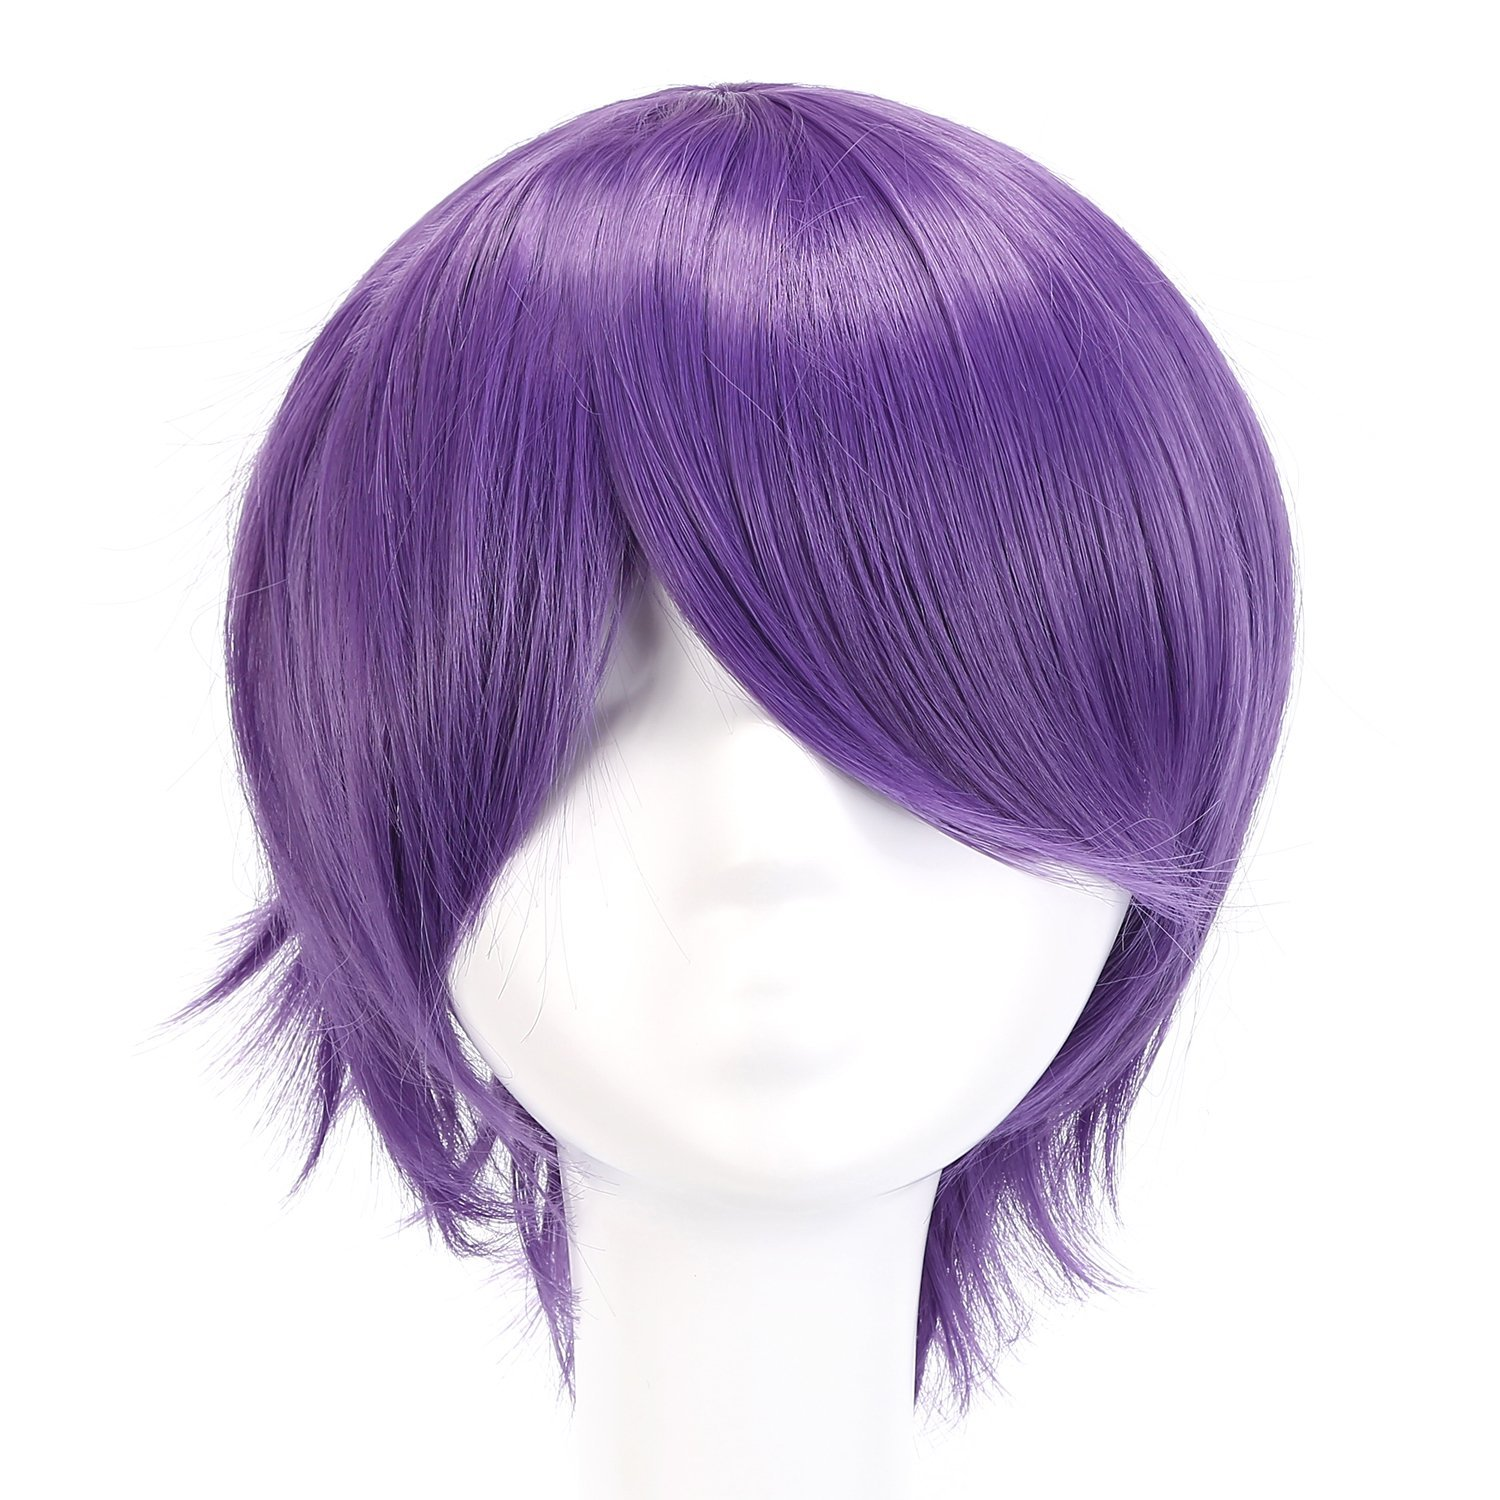 Cosplay Short Wig (Purple)